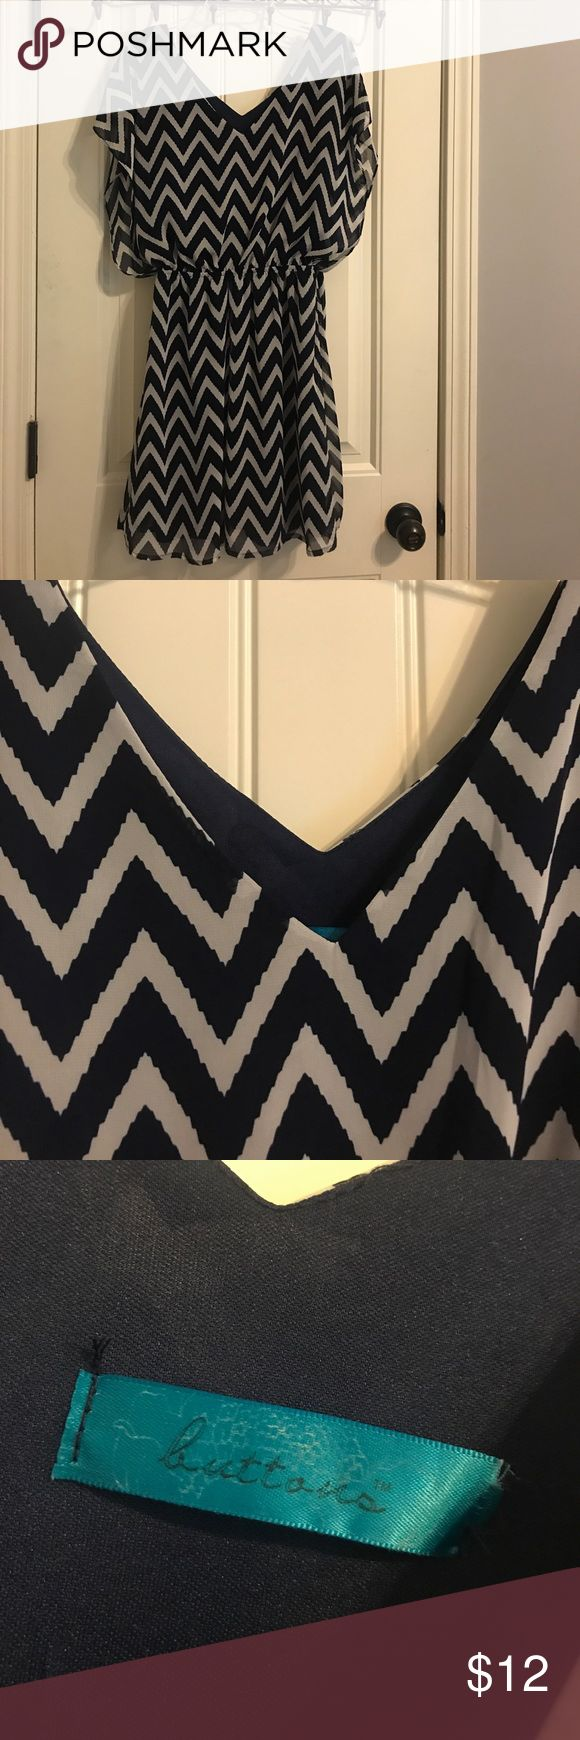 Blue chevron dress The label is cut out but it's a hand wash size large! Other than that it is in great condition Dresses